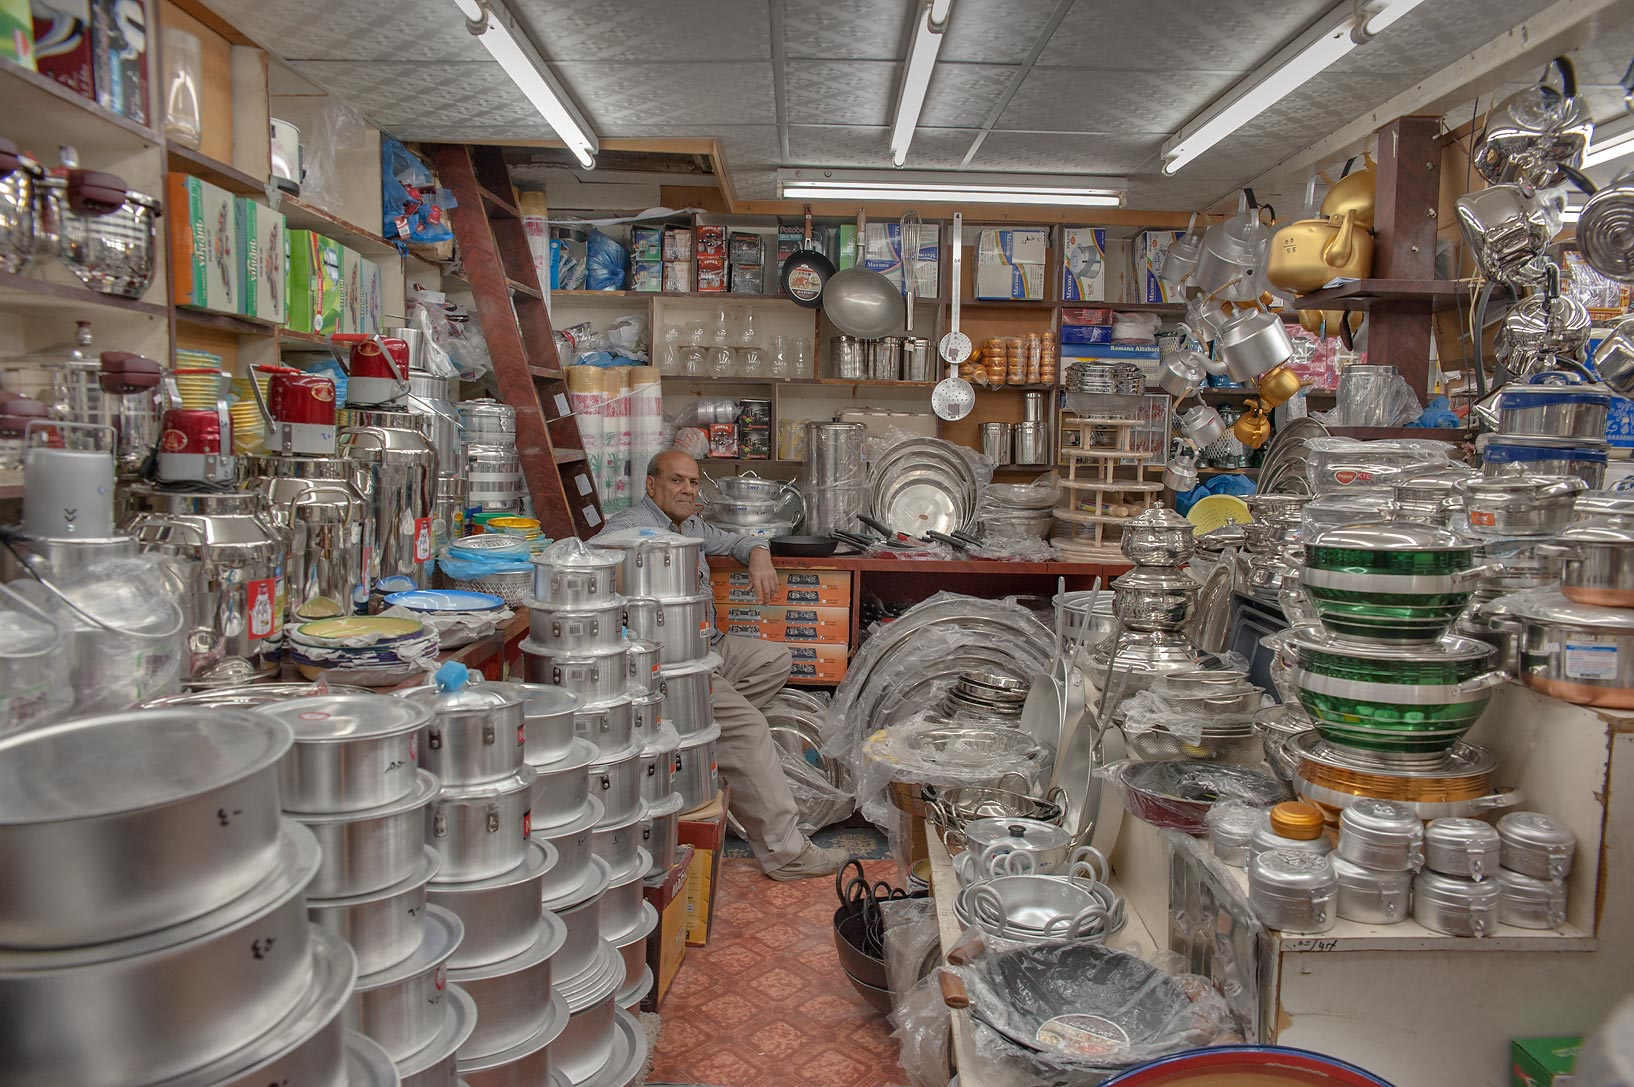 Kitchen ware shop in Souq Waqif (old market). Doha, Qatar